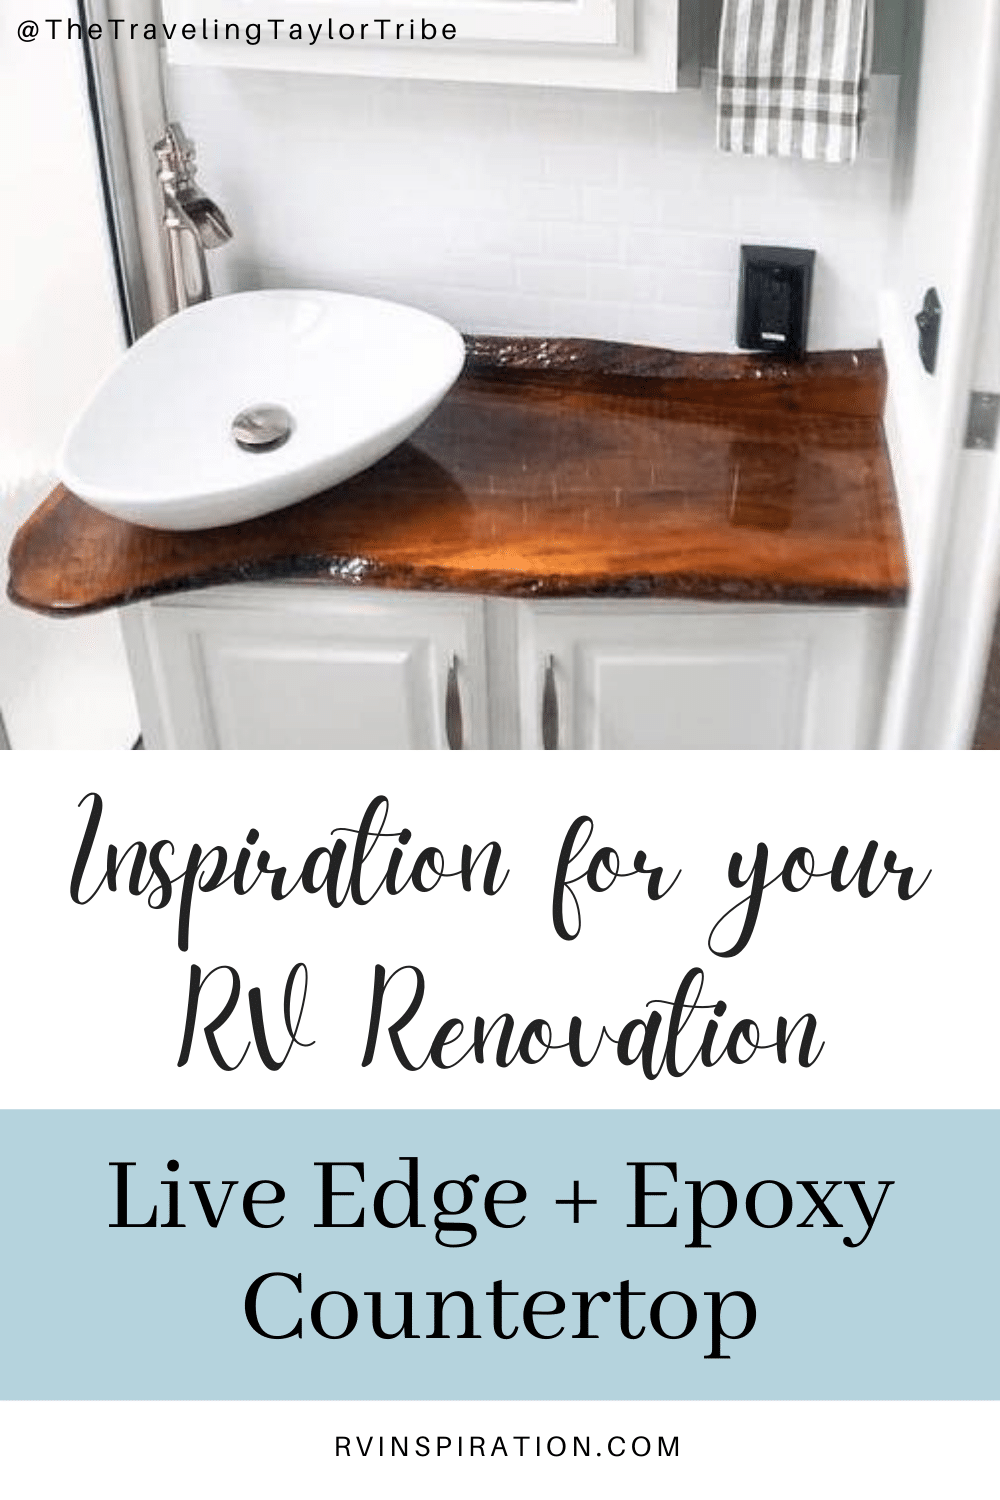 Update your RV kitchen with a beautiful countertop made from live edge wood. #RVrenovation #RVkitchen #RVmakeover #RVcountertop